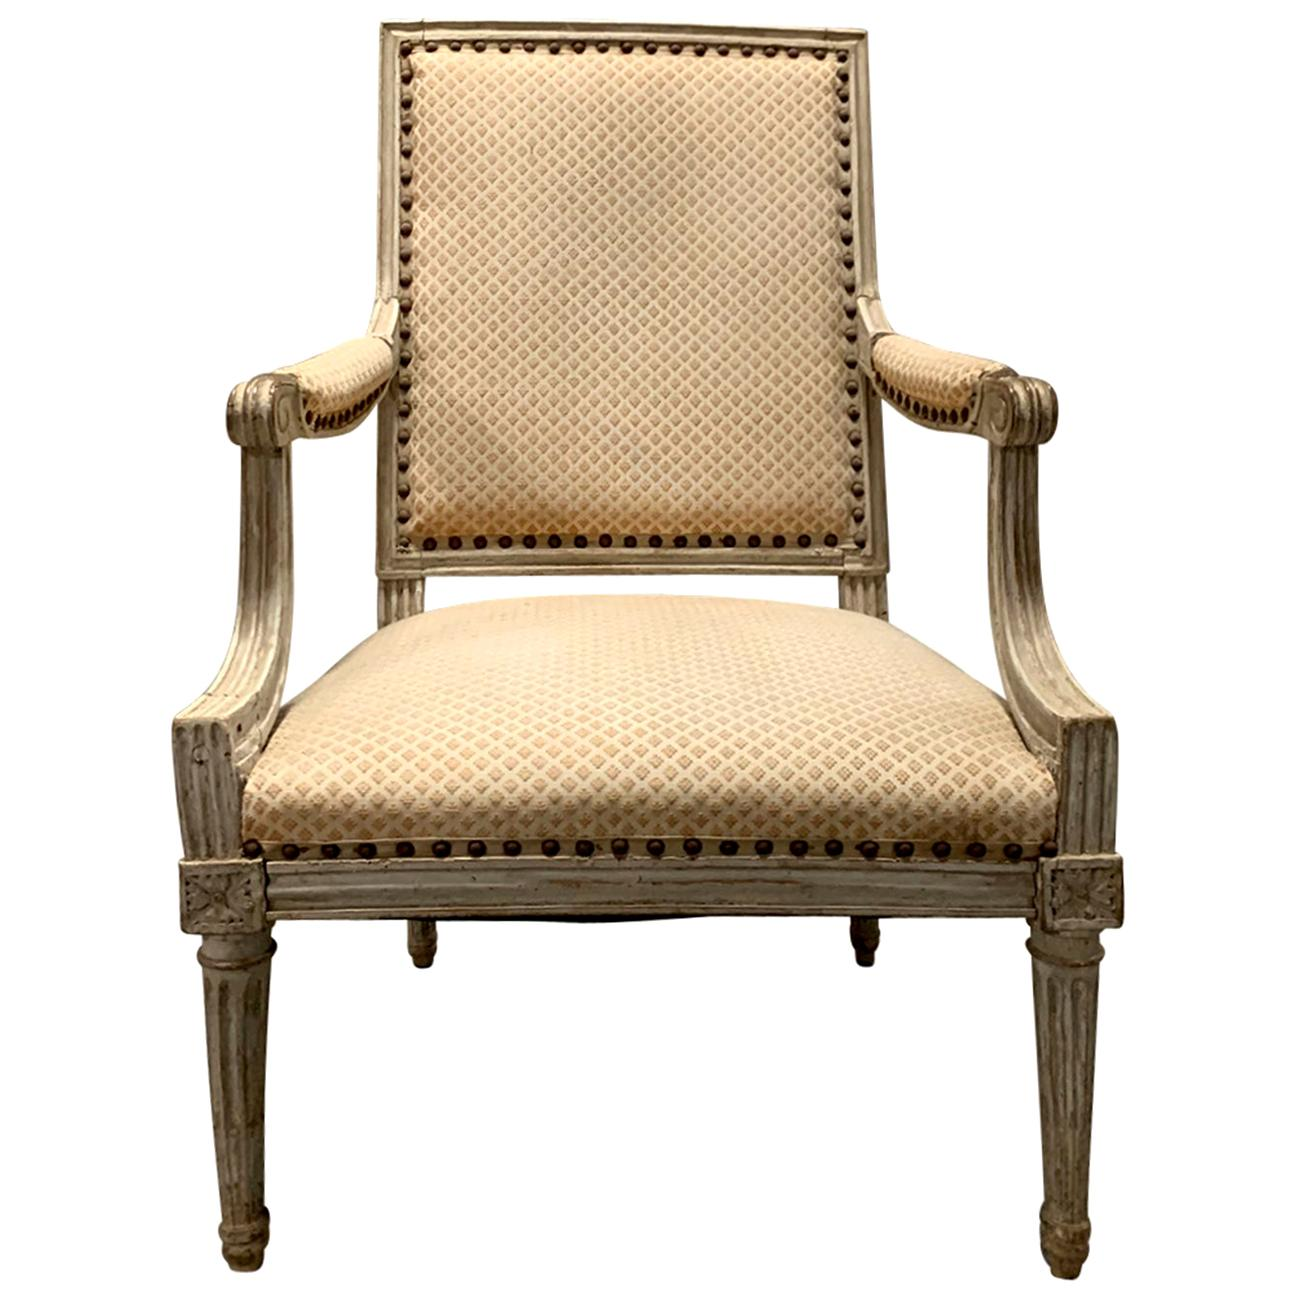 18th-19th Century Louis XVI Style Painted Armchair